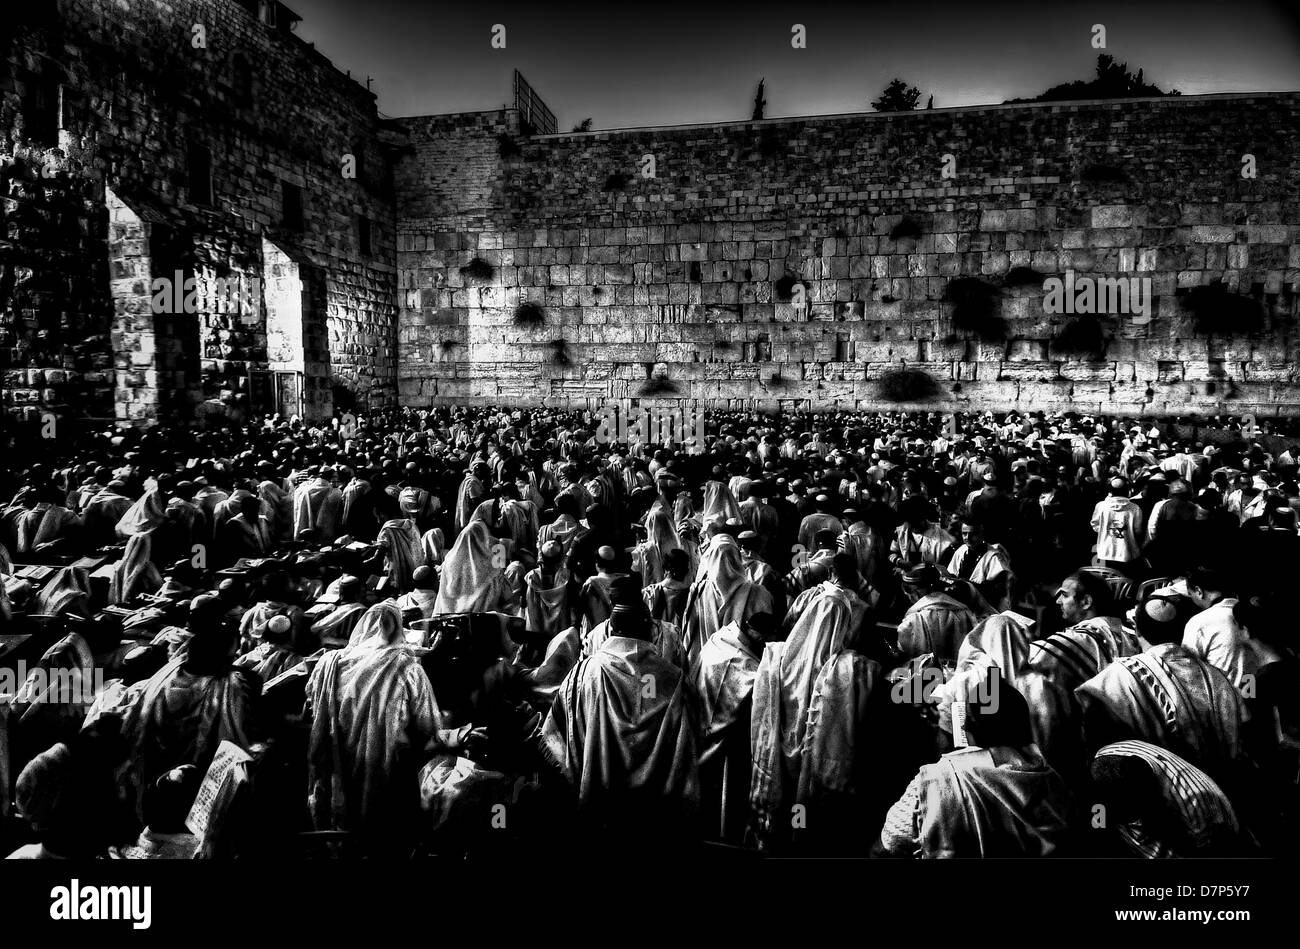 Prayers in the Western Wall at Dusk, Yom Kipur mass Prays, The old city of Jerusalem. Black and white photo. - Stock Image